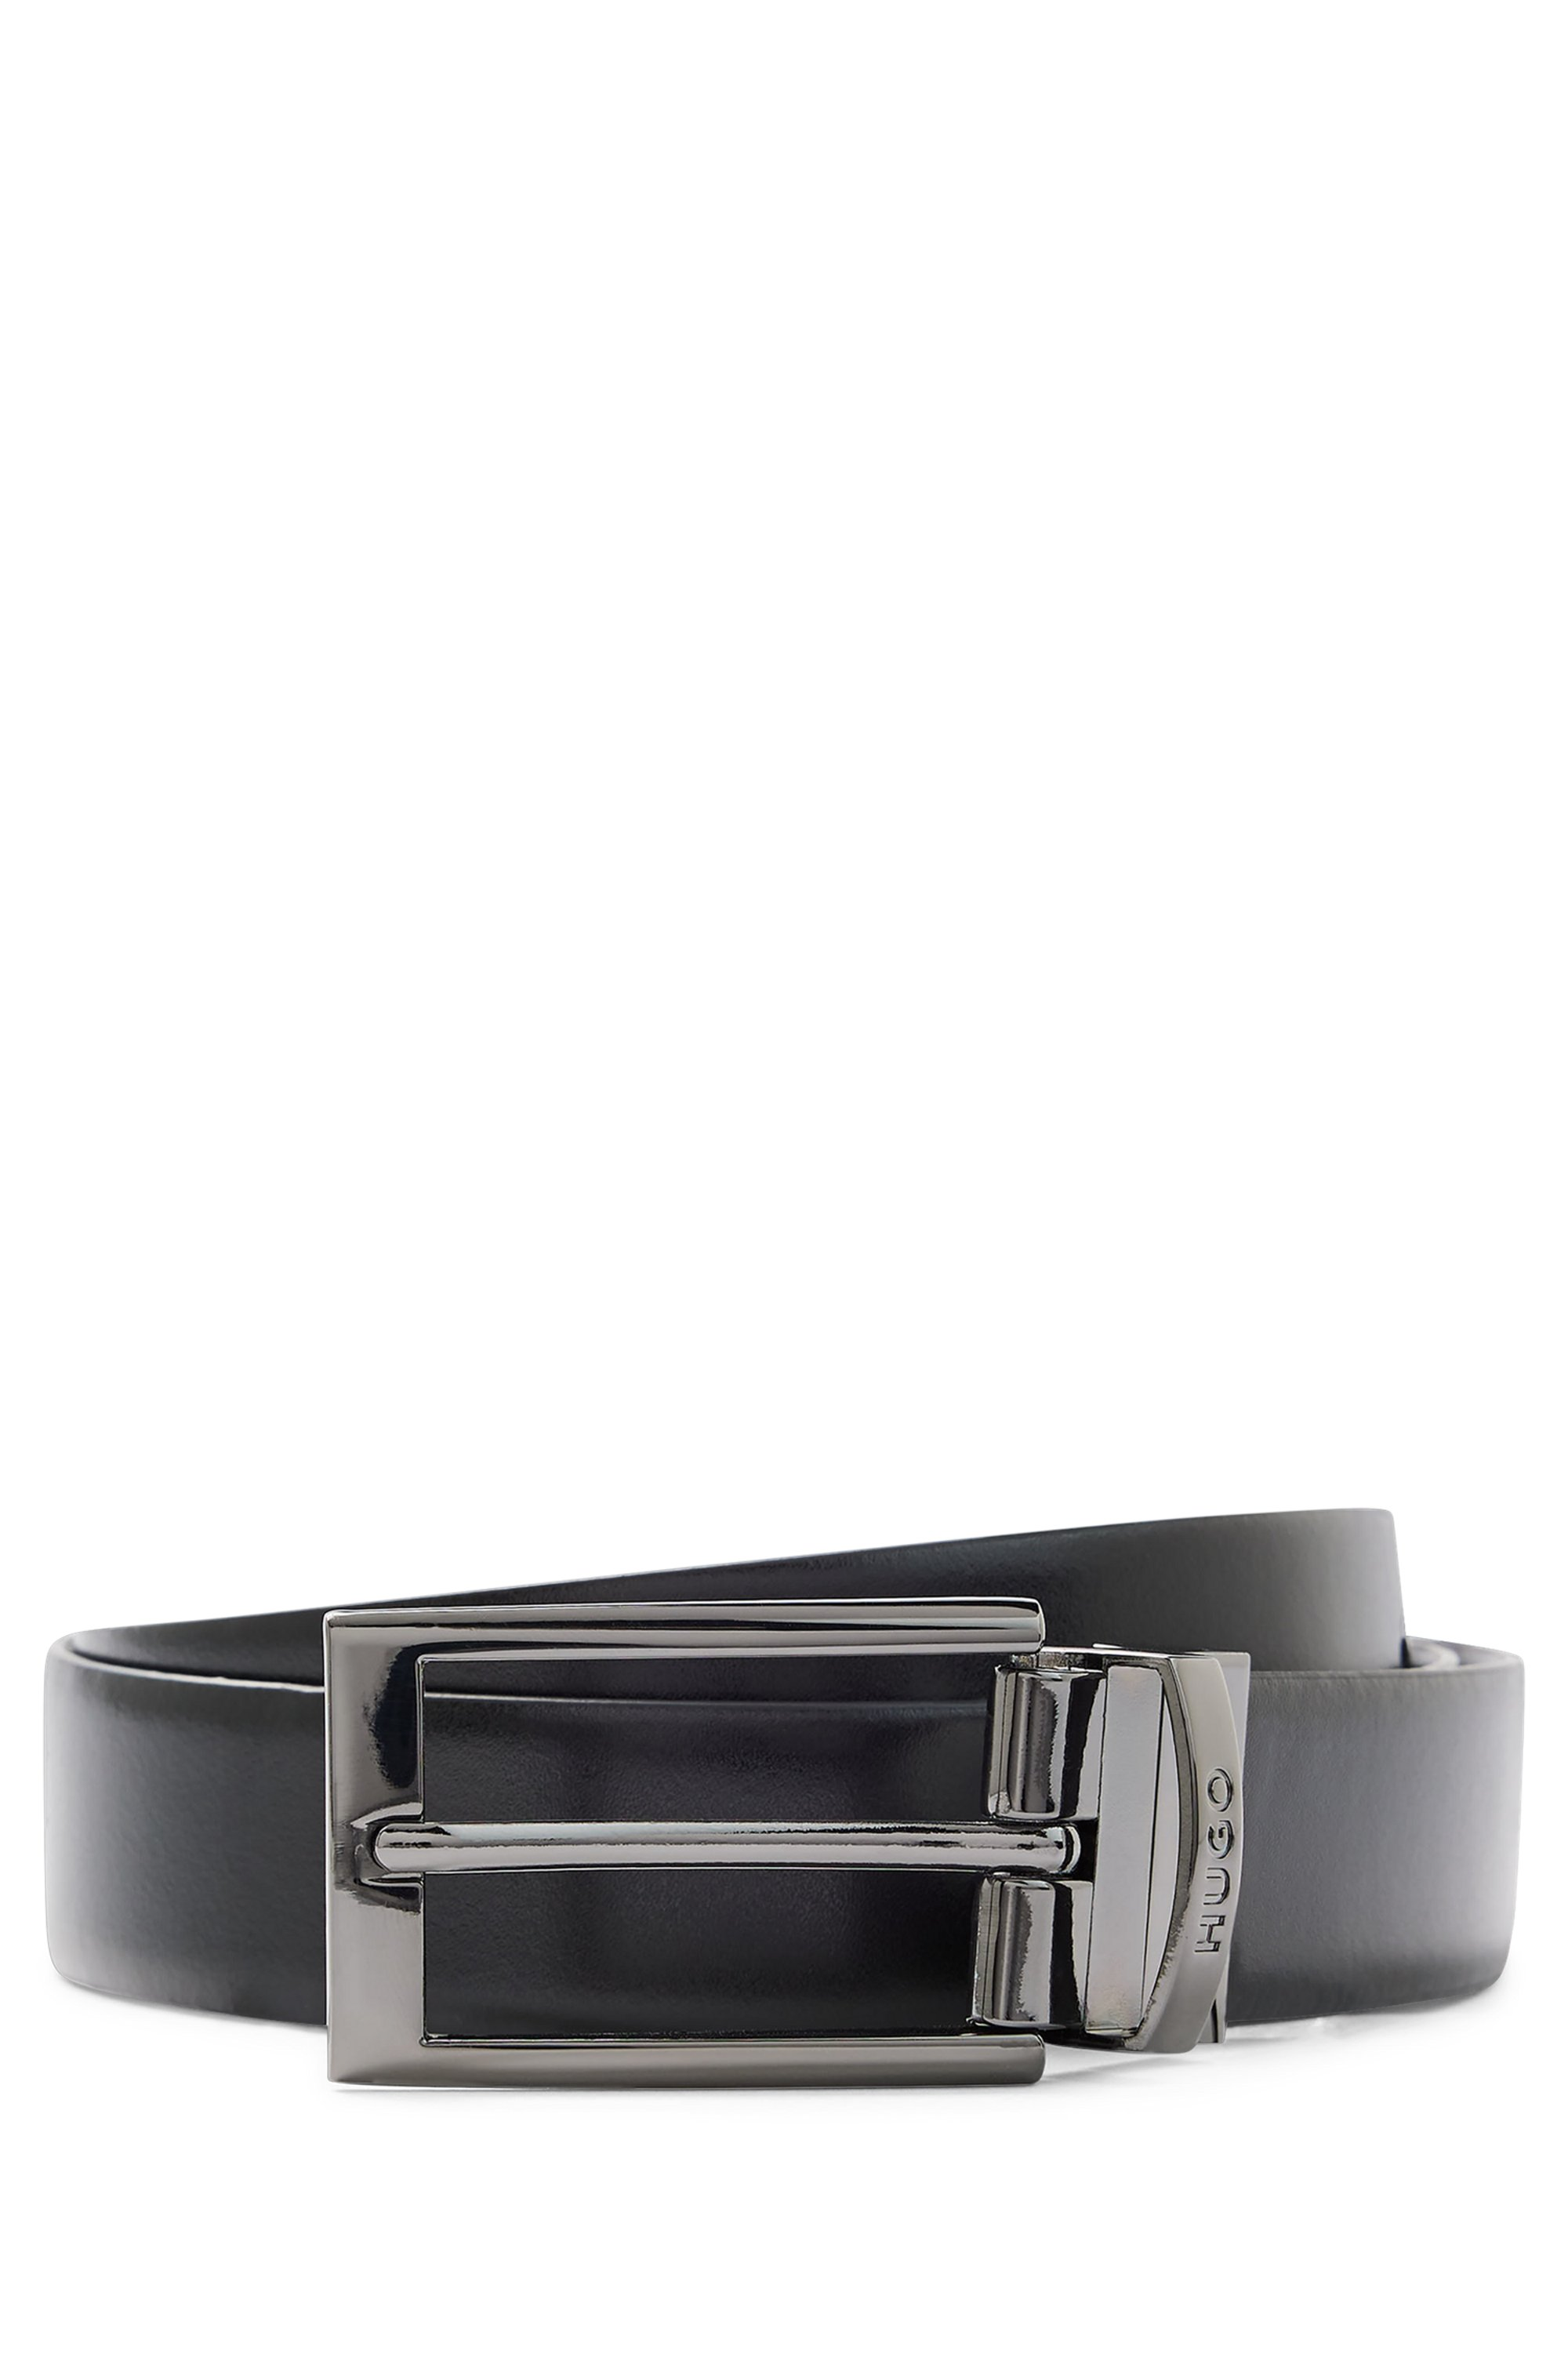 Calf-leather belt with polished silver-tone buckle, Black